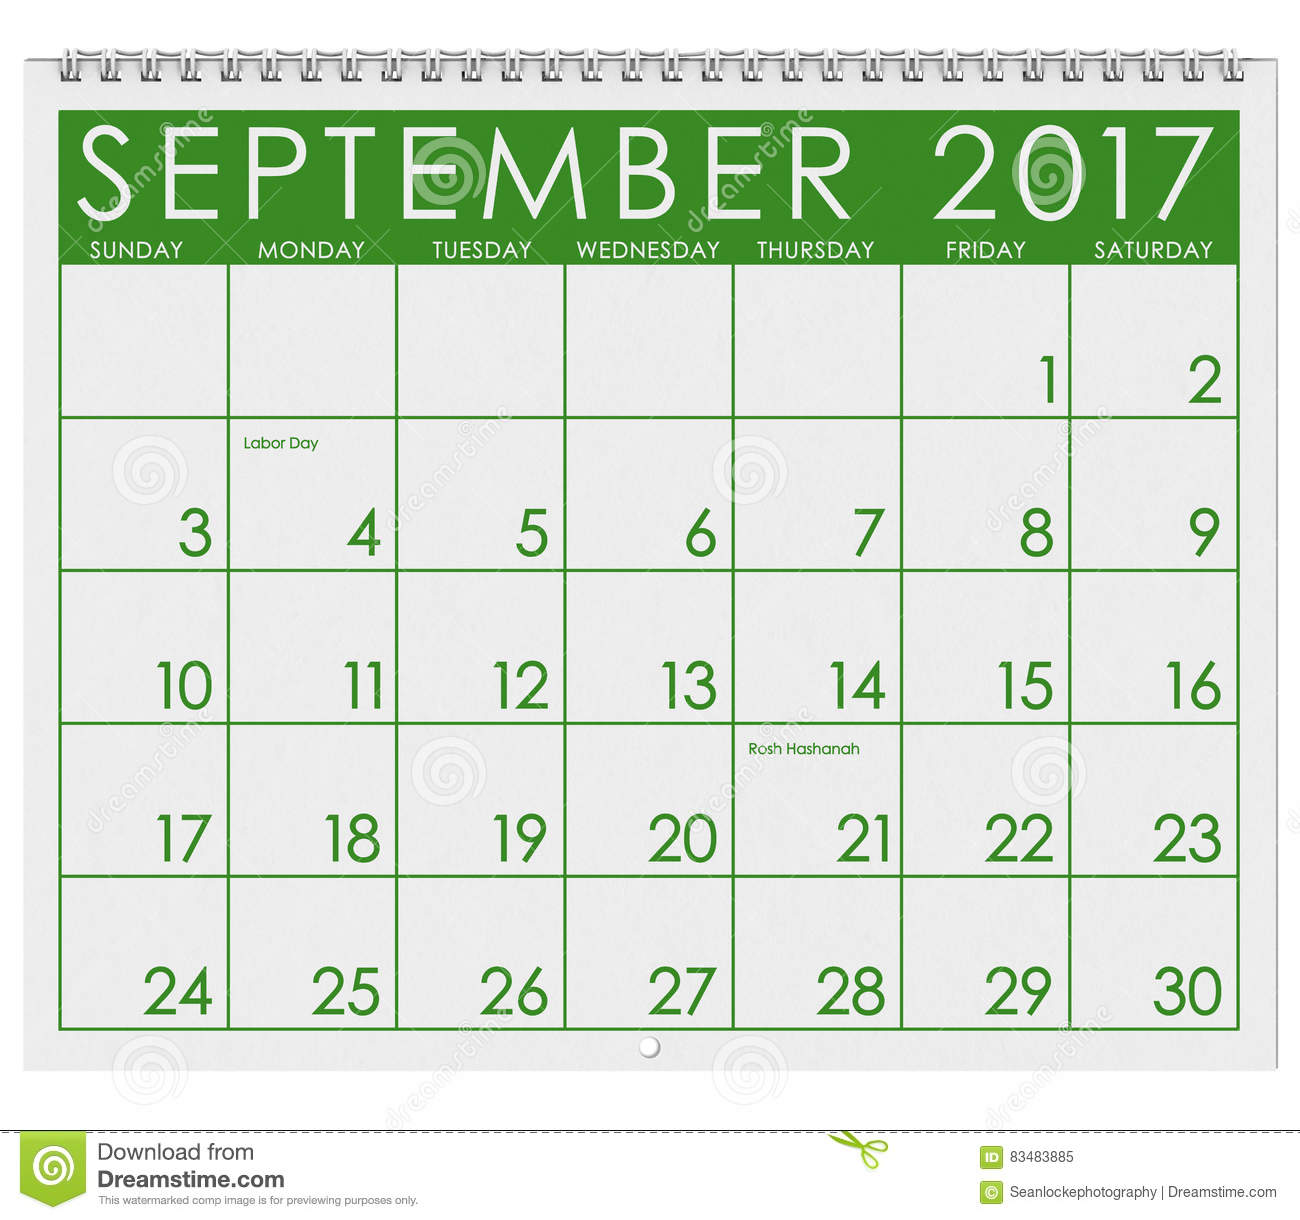 What date is labor day 2017 in Auckland